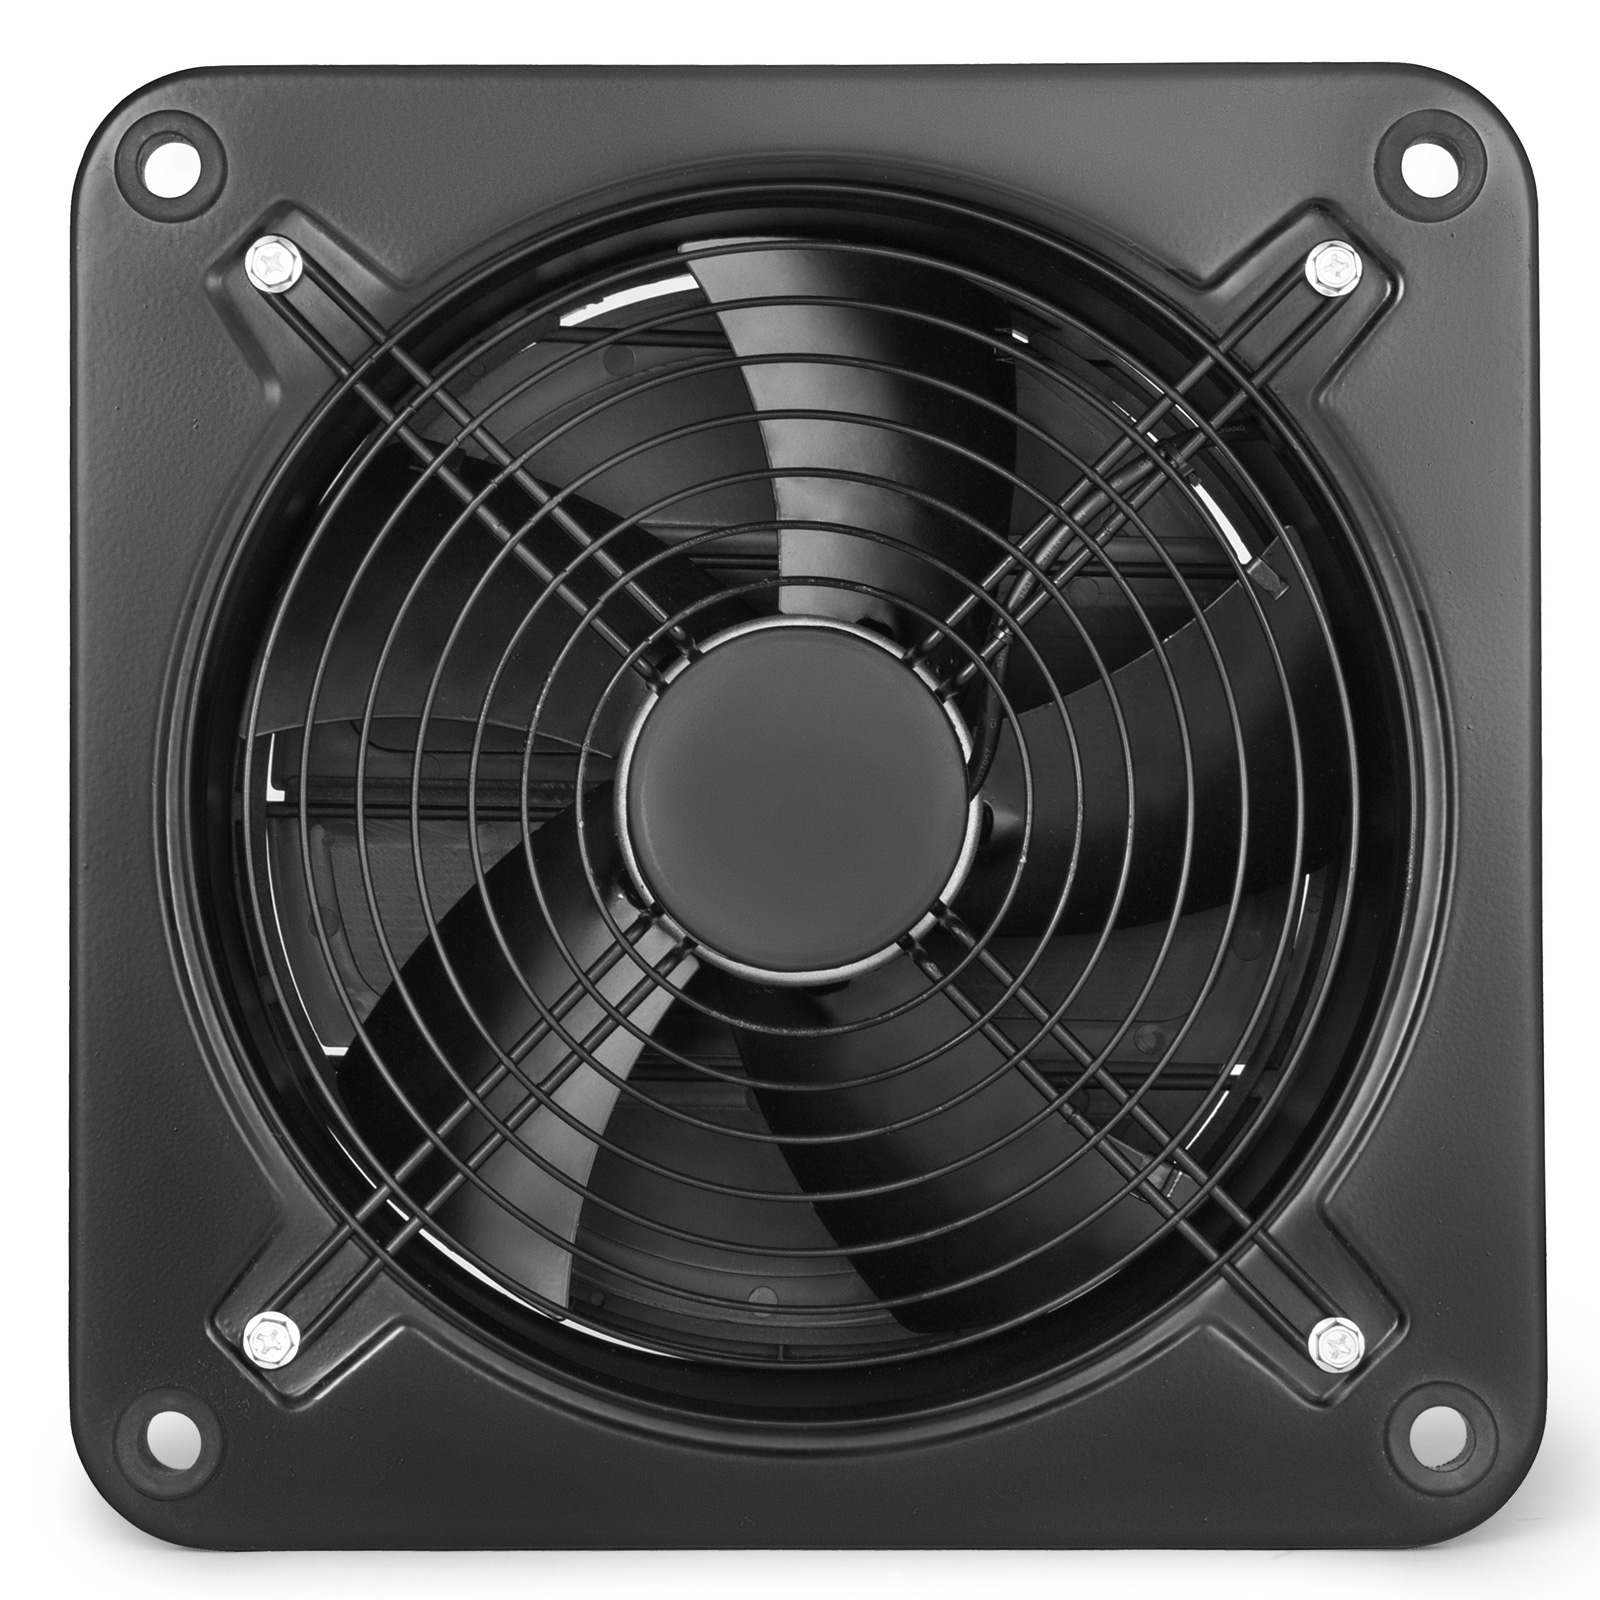 Details about Industrial Ventilation Extractor Metal Axial Exhaust Air Fan  Heavy Duty 12 inch